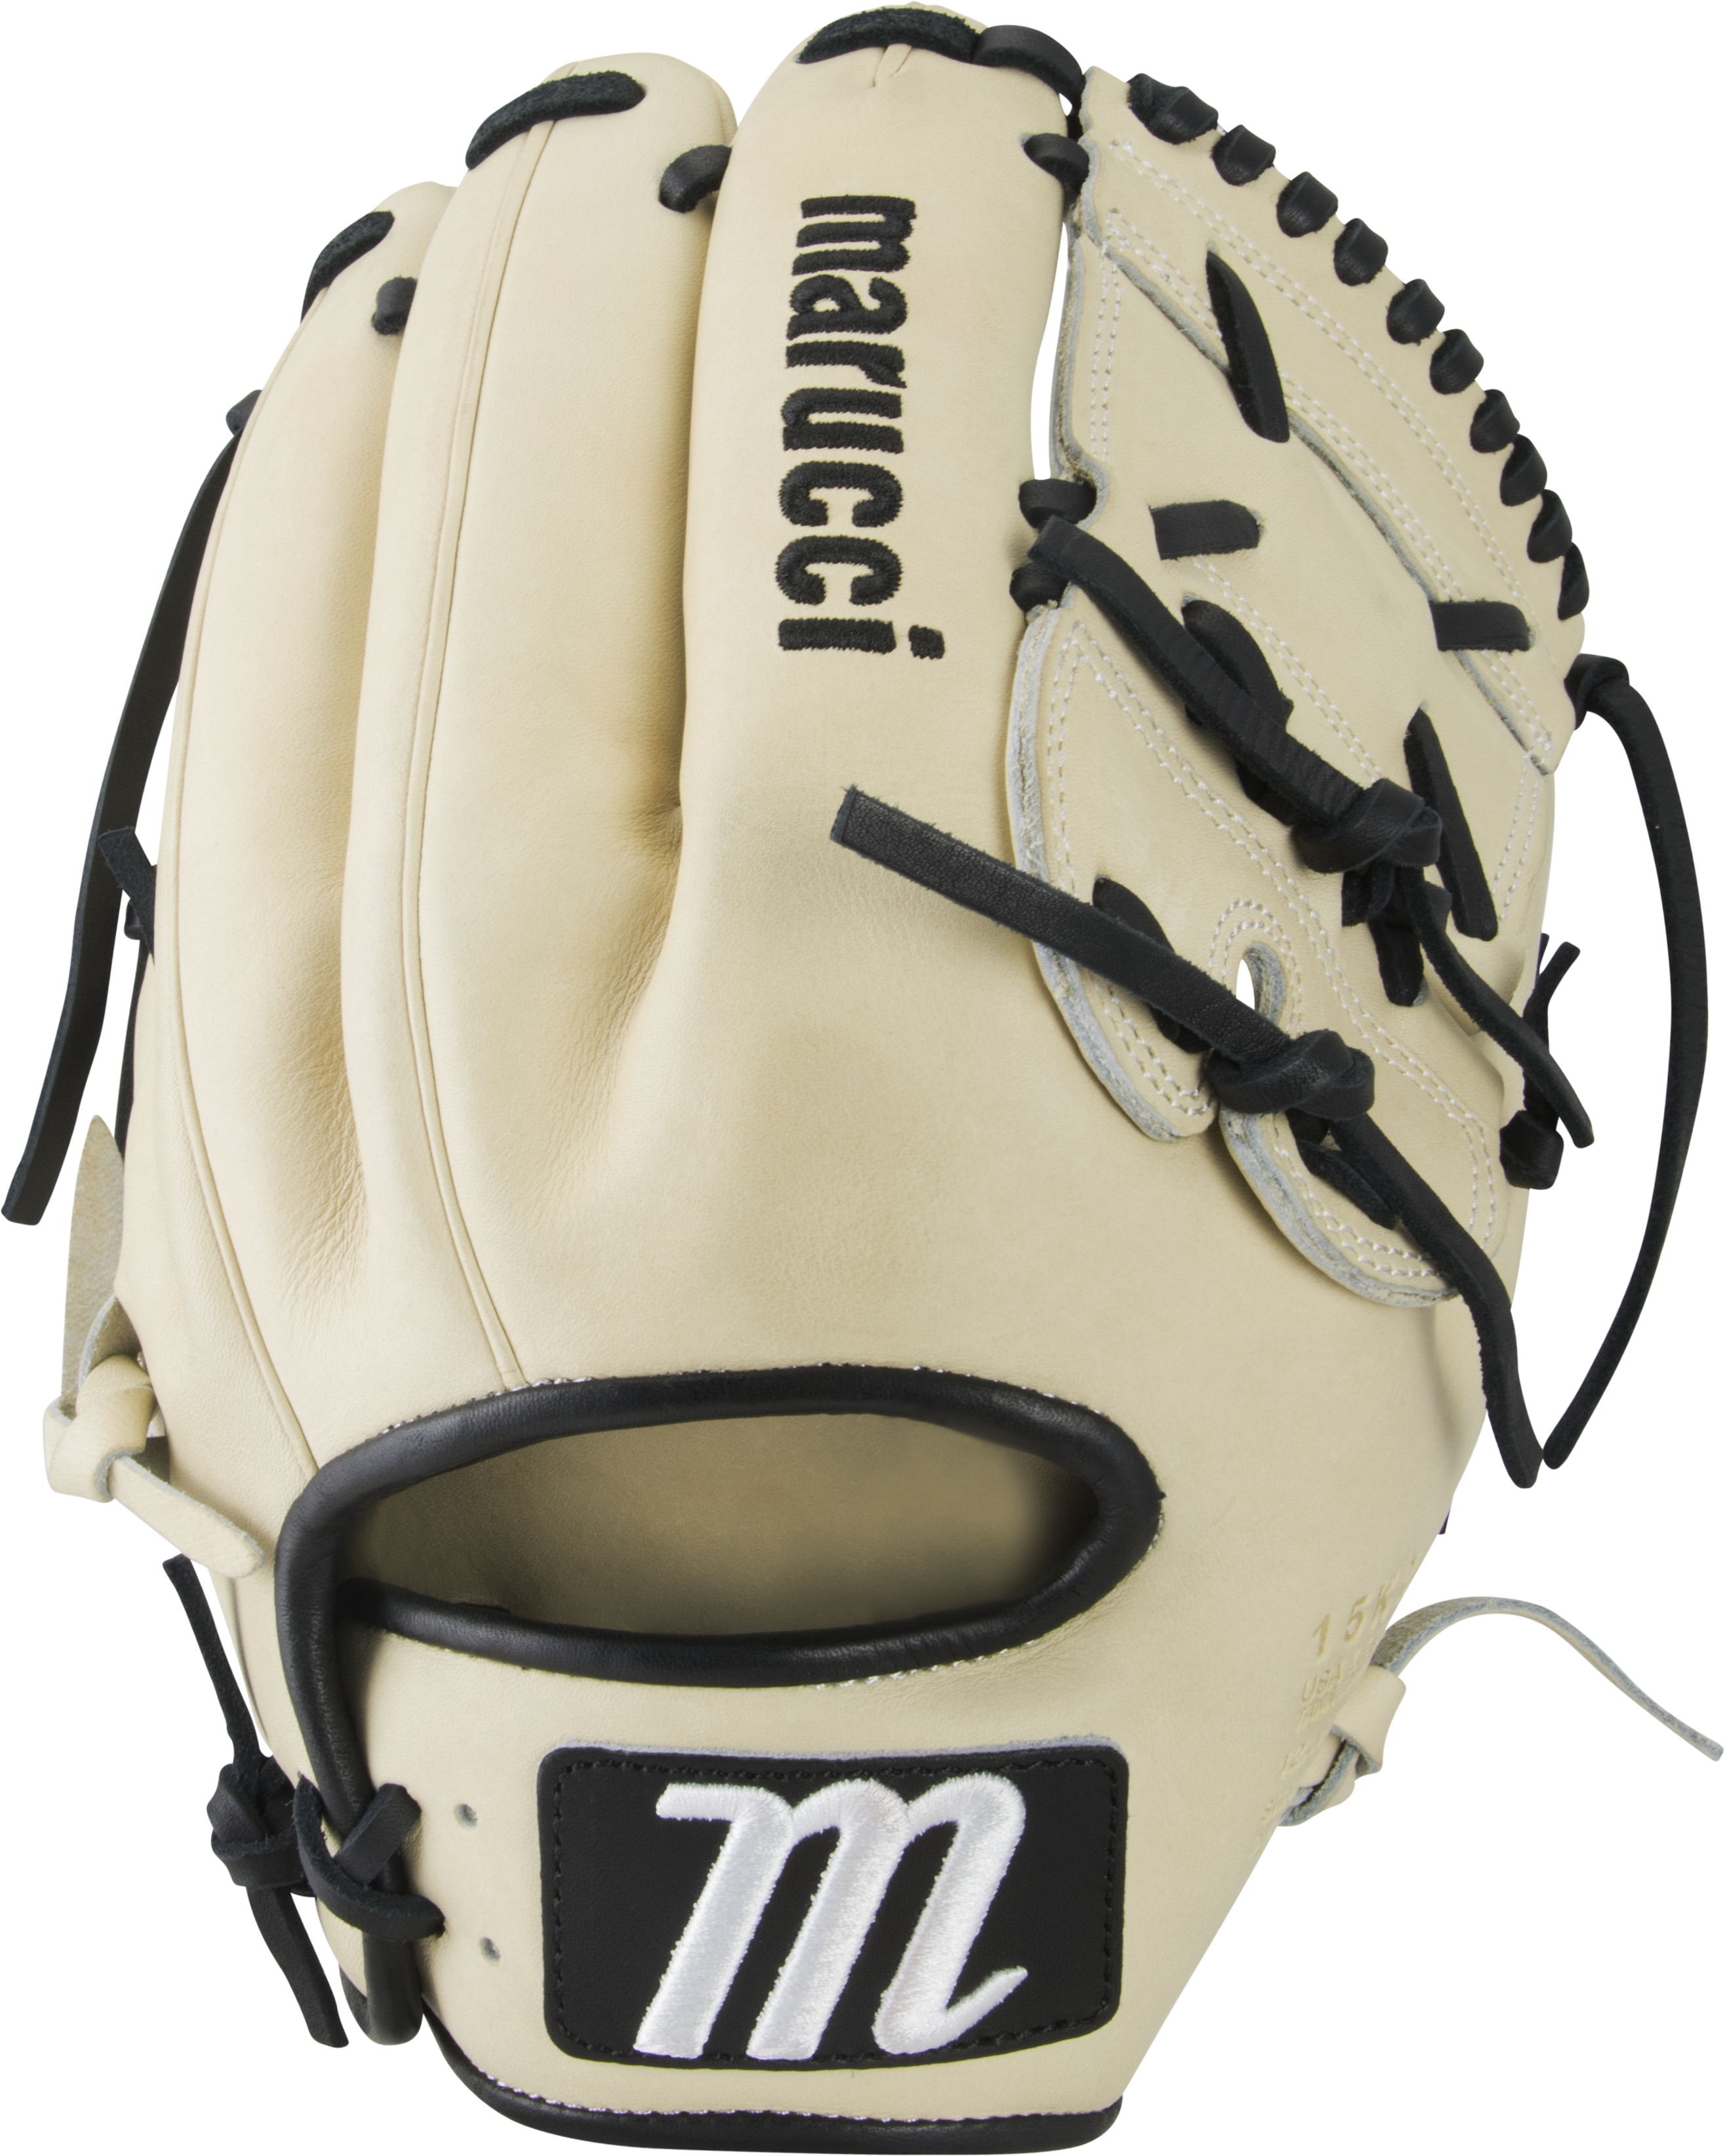 marucci-capitol-12-baseball-glove-15k2-two-piece-solid-web-right-hand-throw MFGCP15K2-CMBK-RightHandThrow Marucci  849817099261 Premium Japanese-tanned USA Kip leather combines ideal stiffness with lightweight feel